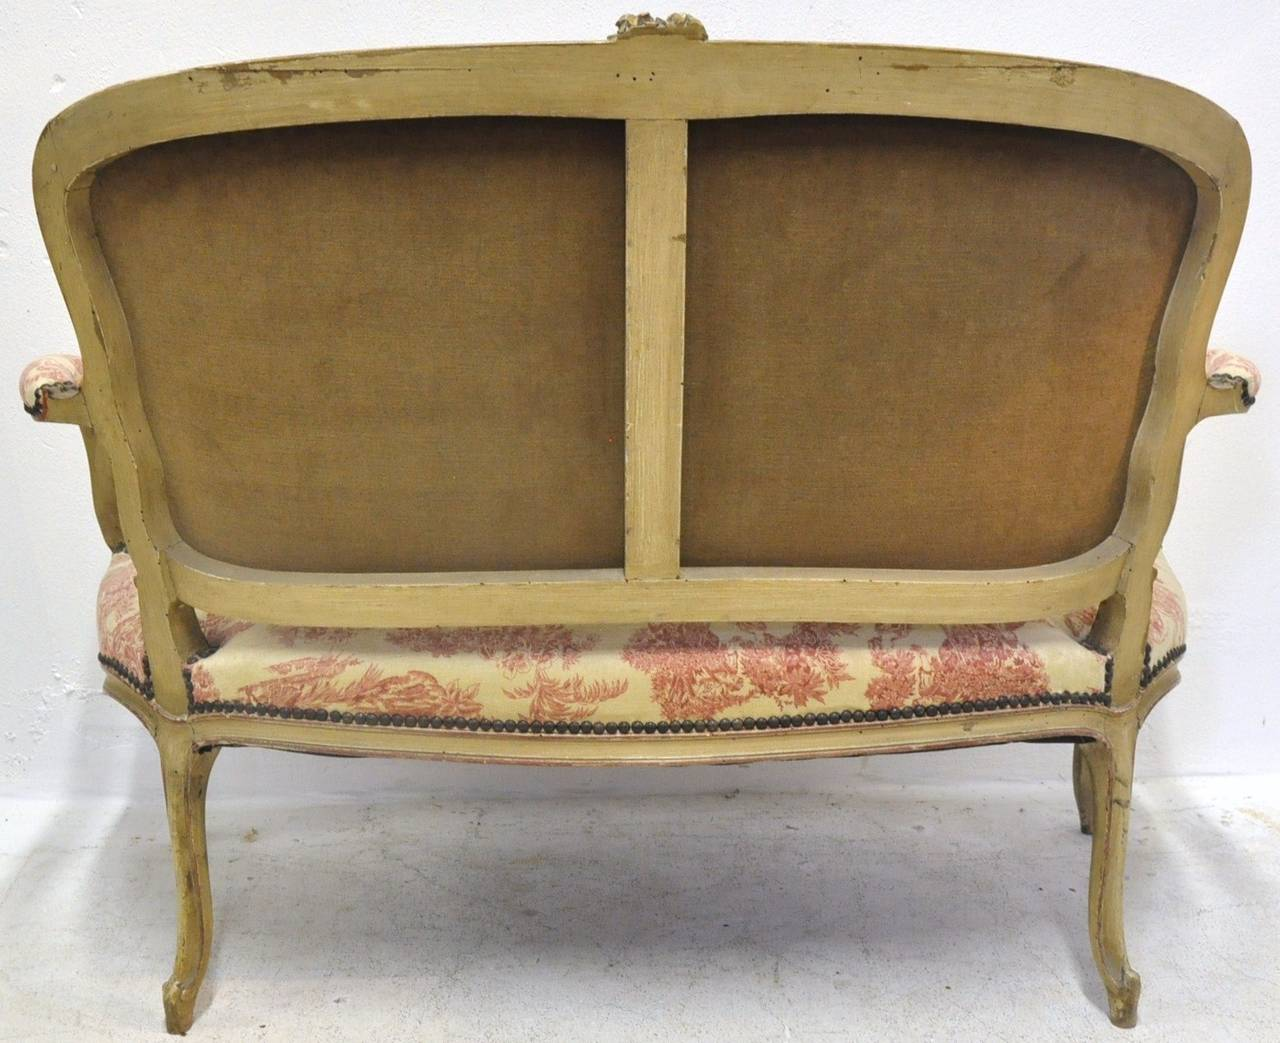 19th Century French Louis XV Carved Painted Two-Seat Settee with Vintage Fabric For Sale 3